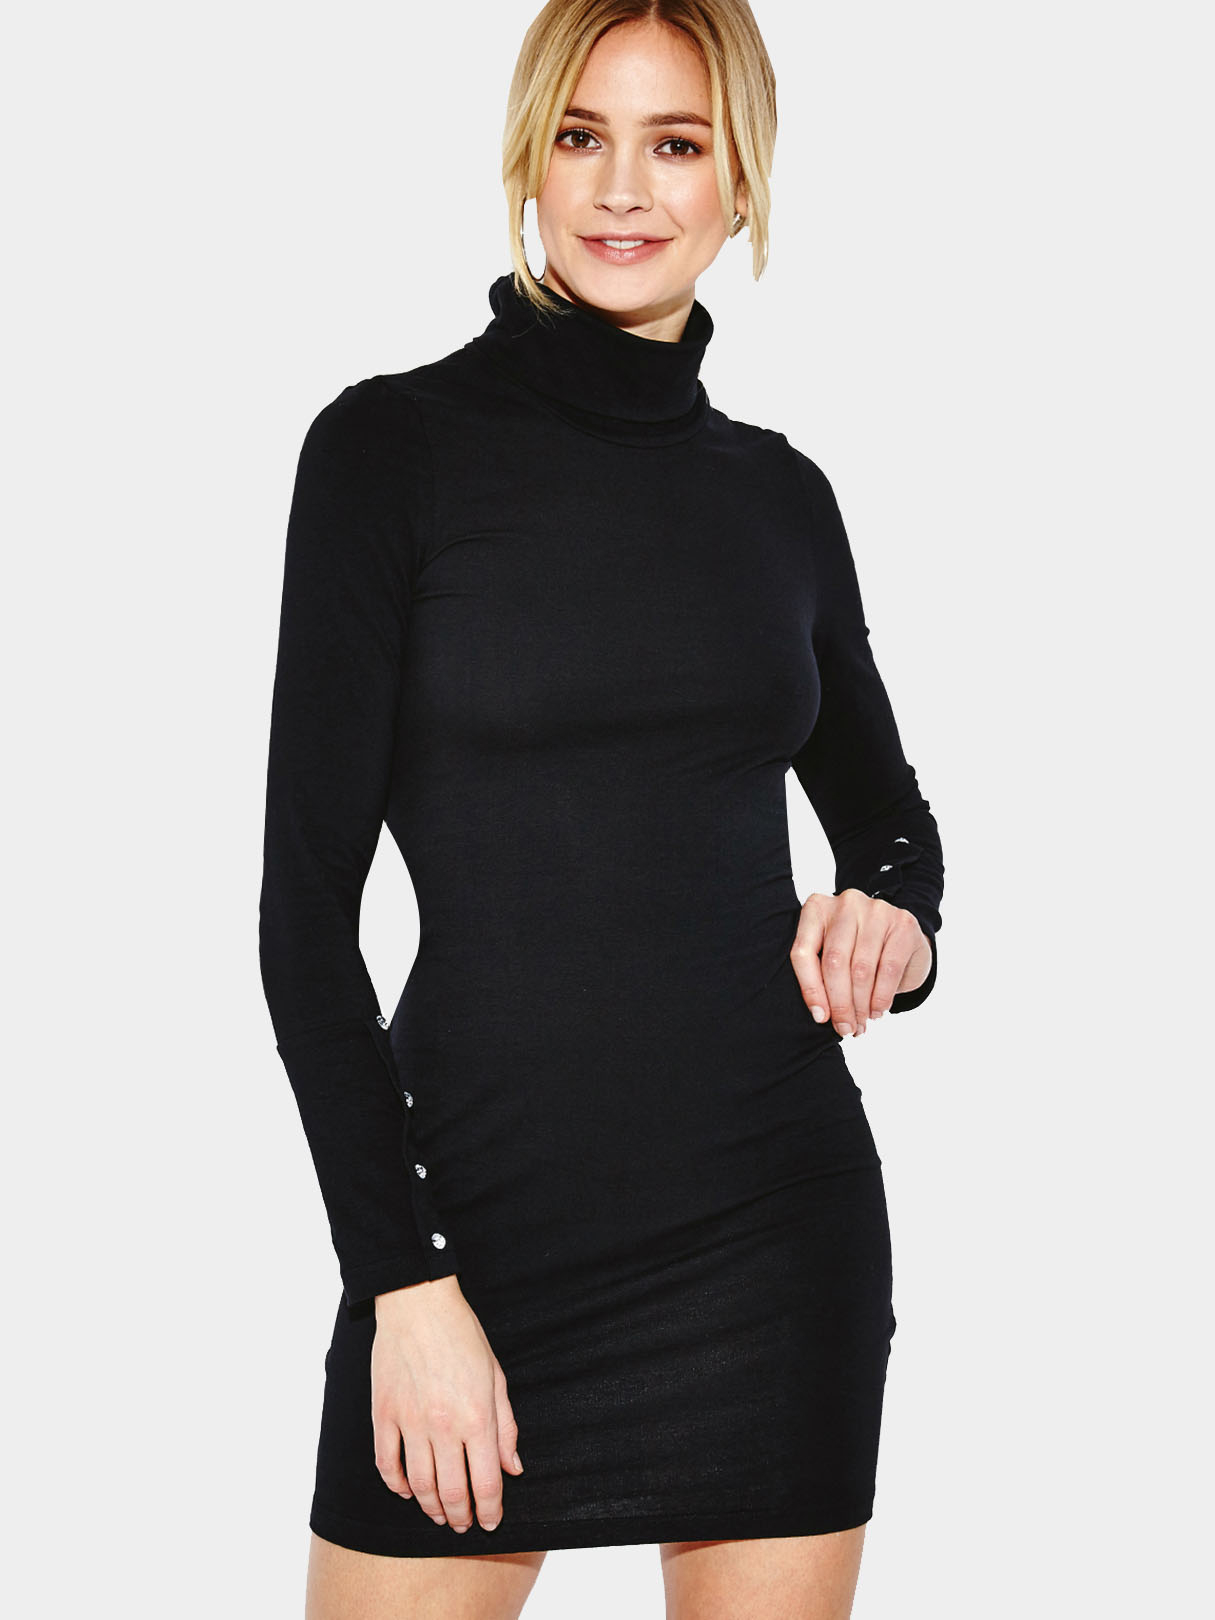 Black High Neck Bodycon Mini Dress with Long Sleeves фонарь maglite mini black m2a016e